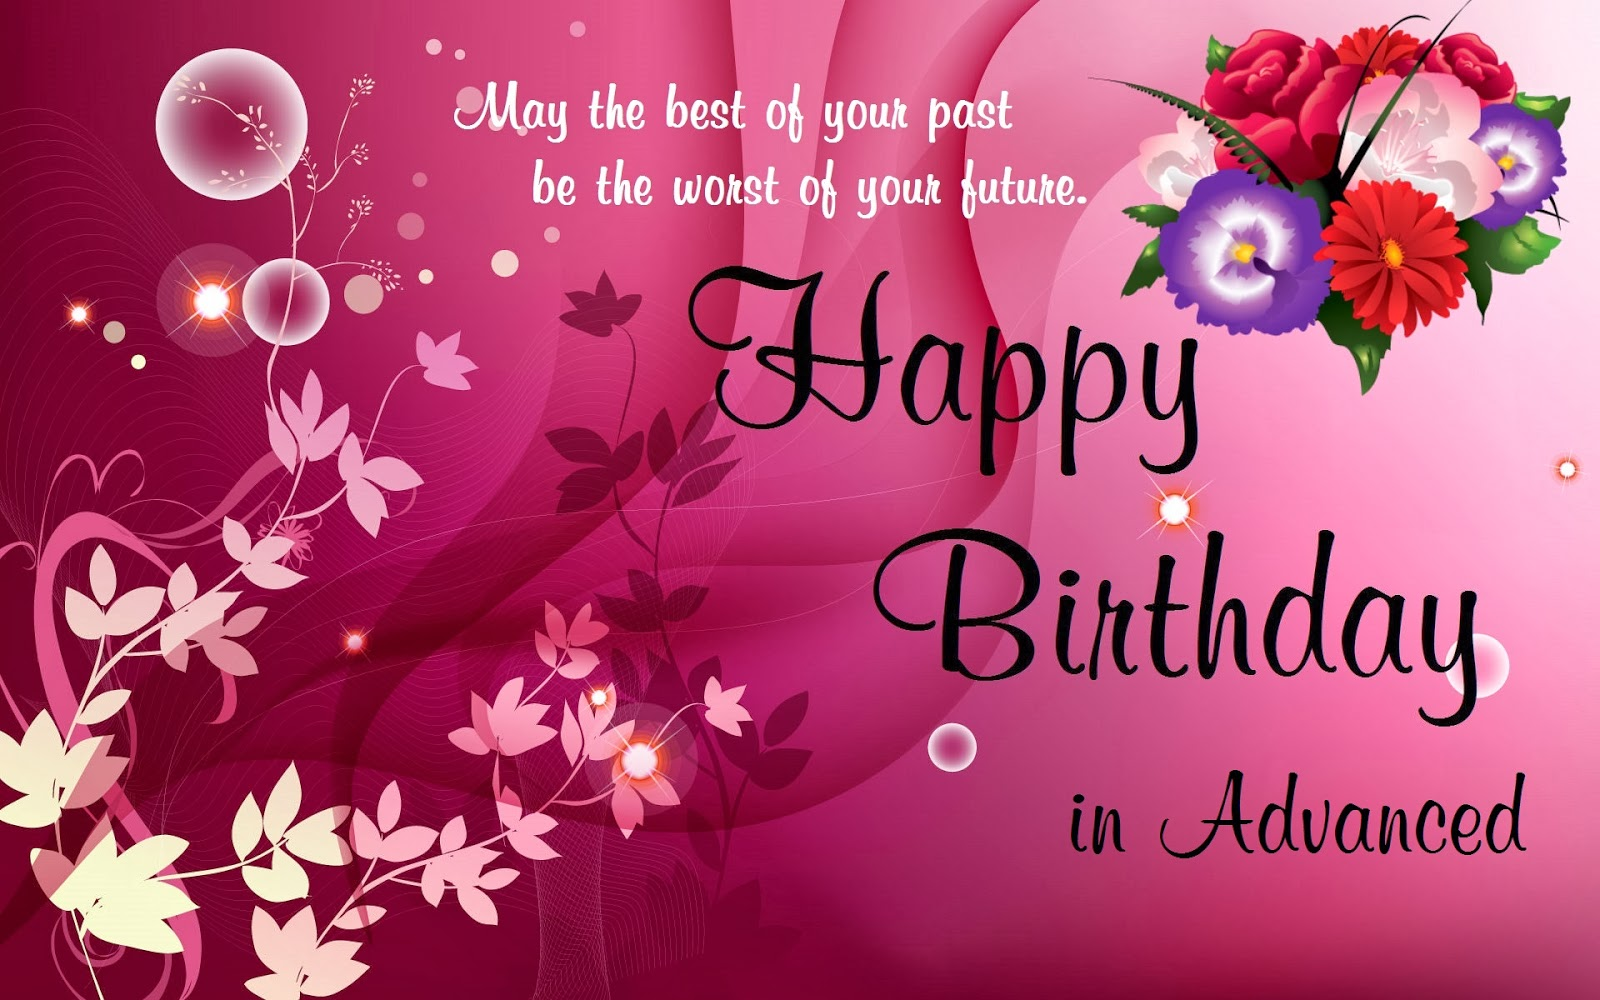 happy birthday quotes images hd ; grandpa-advance-happy-birthday-wishes